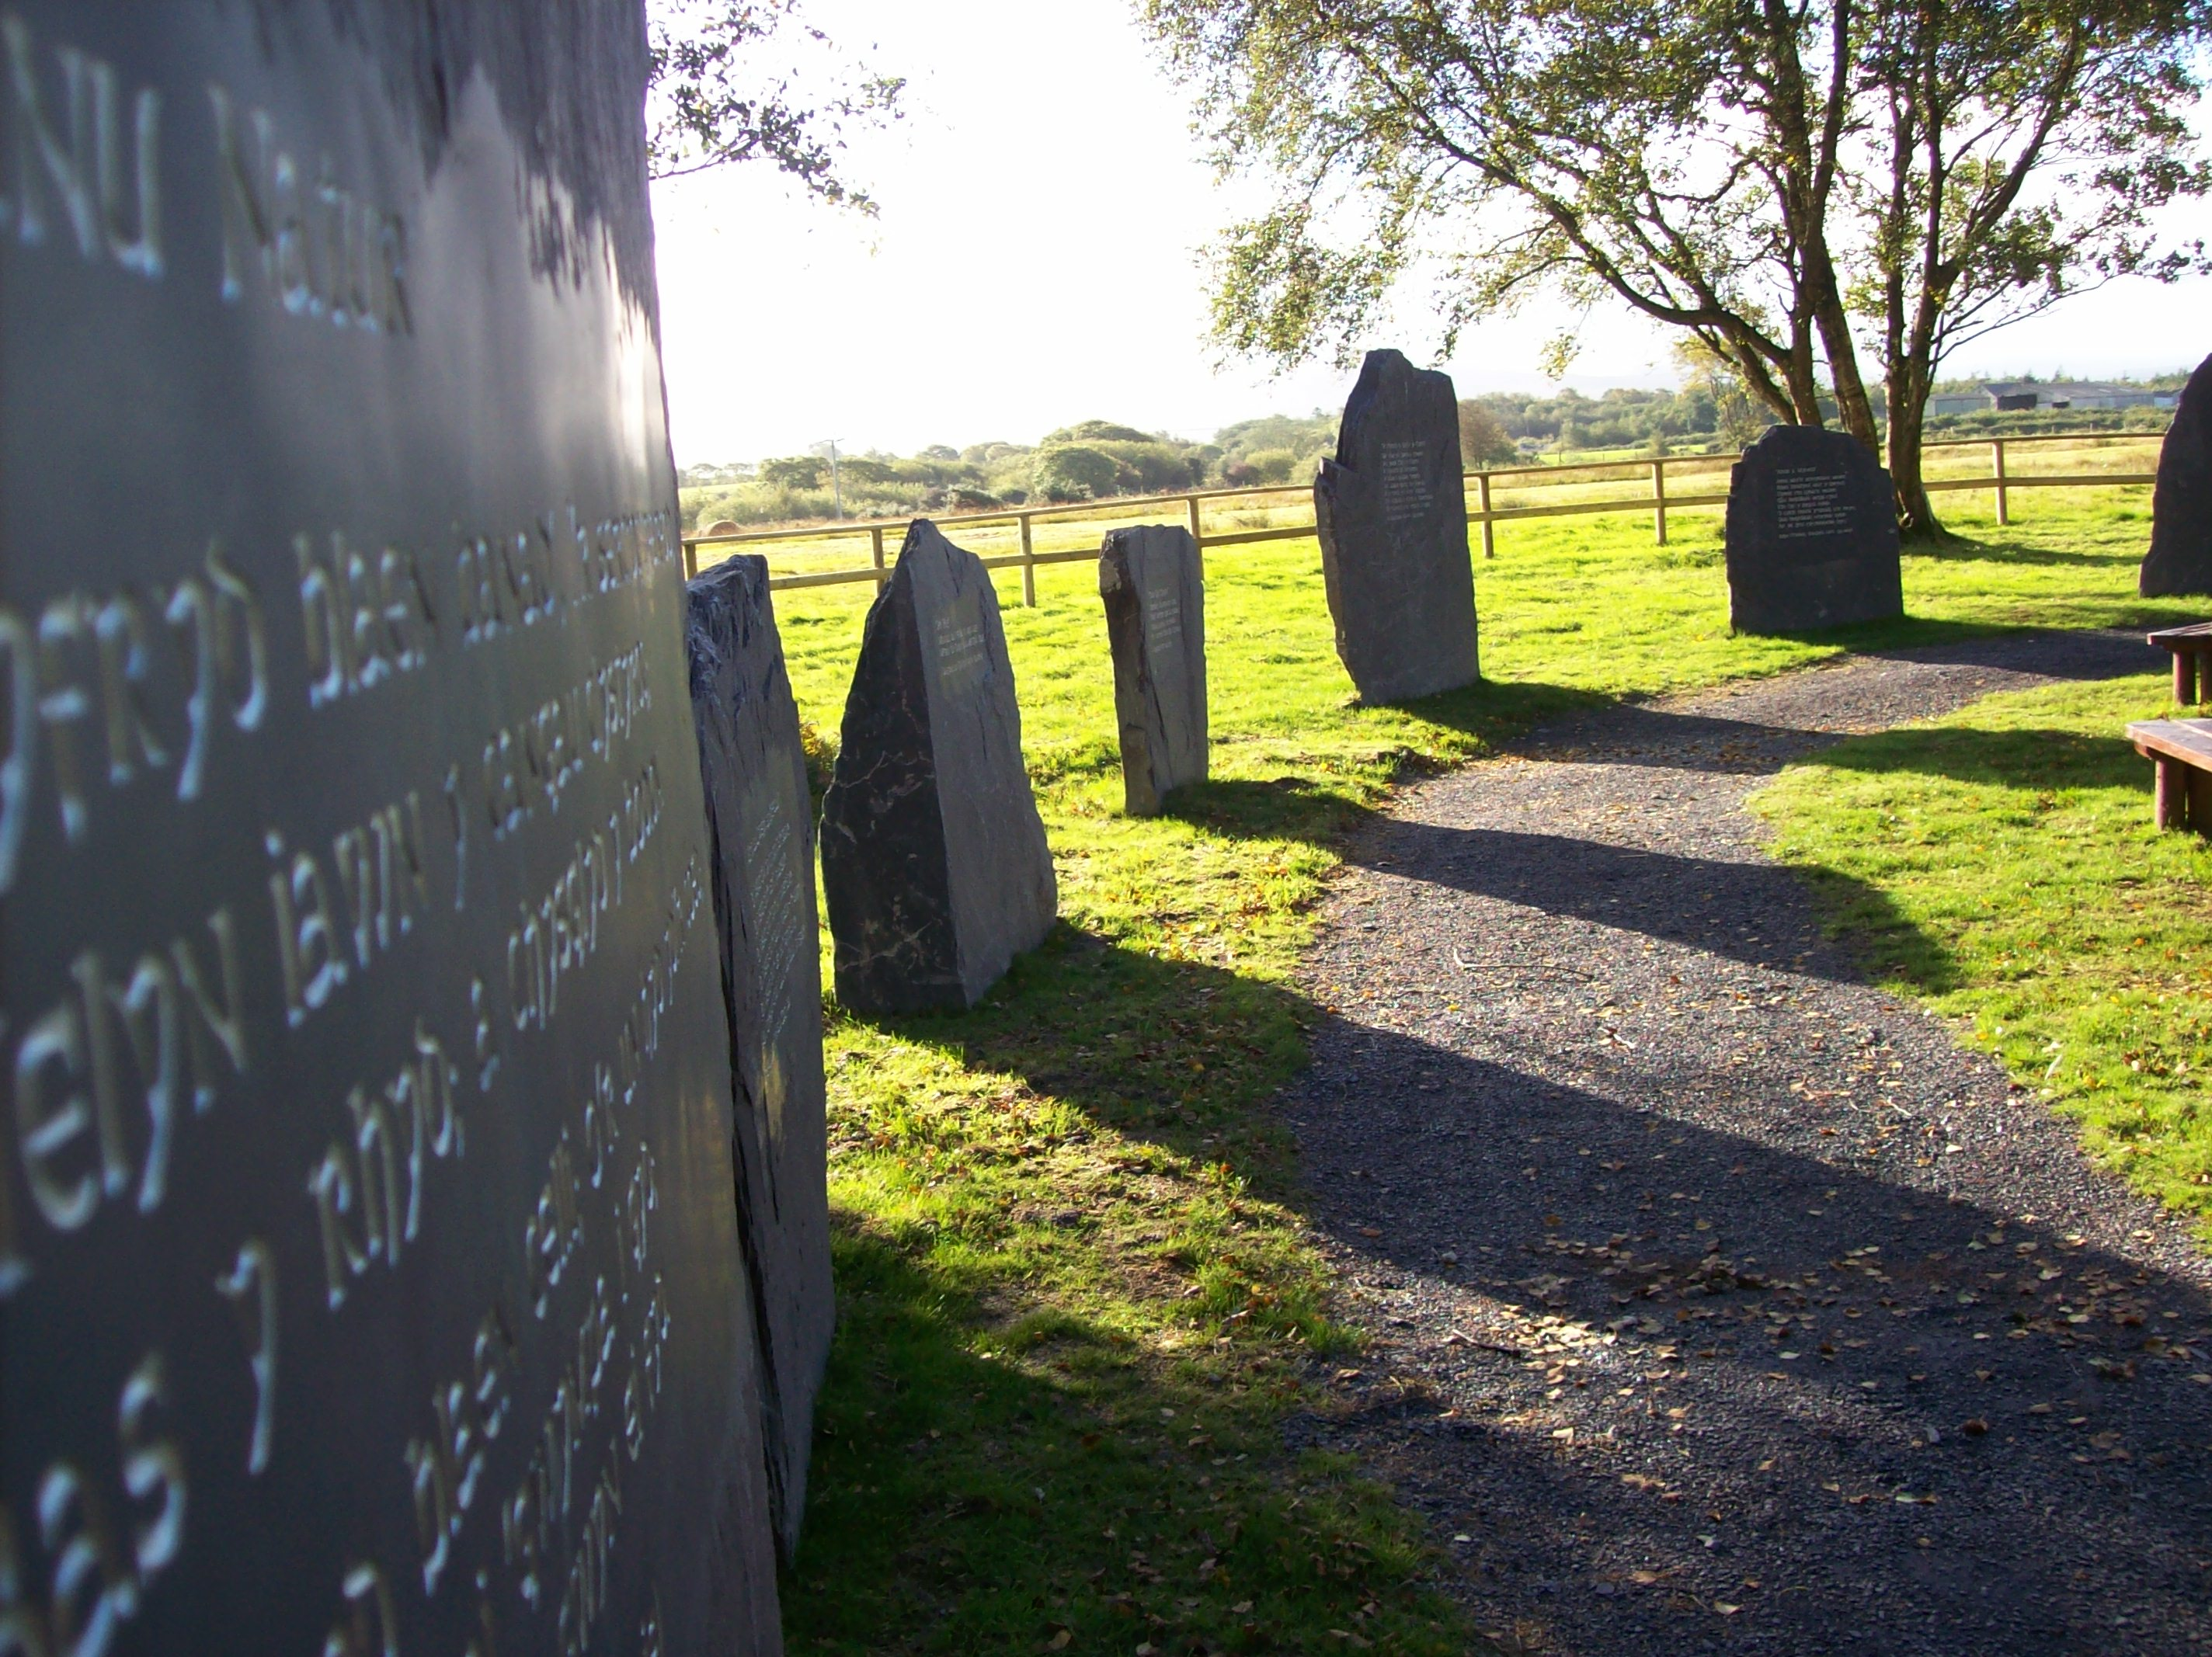 Large engraved standing stones